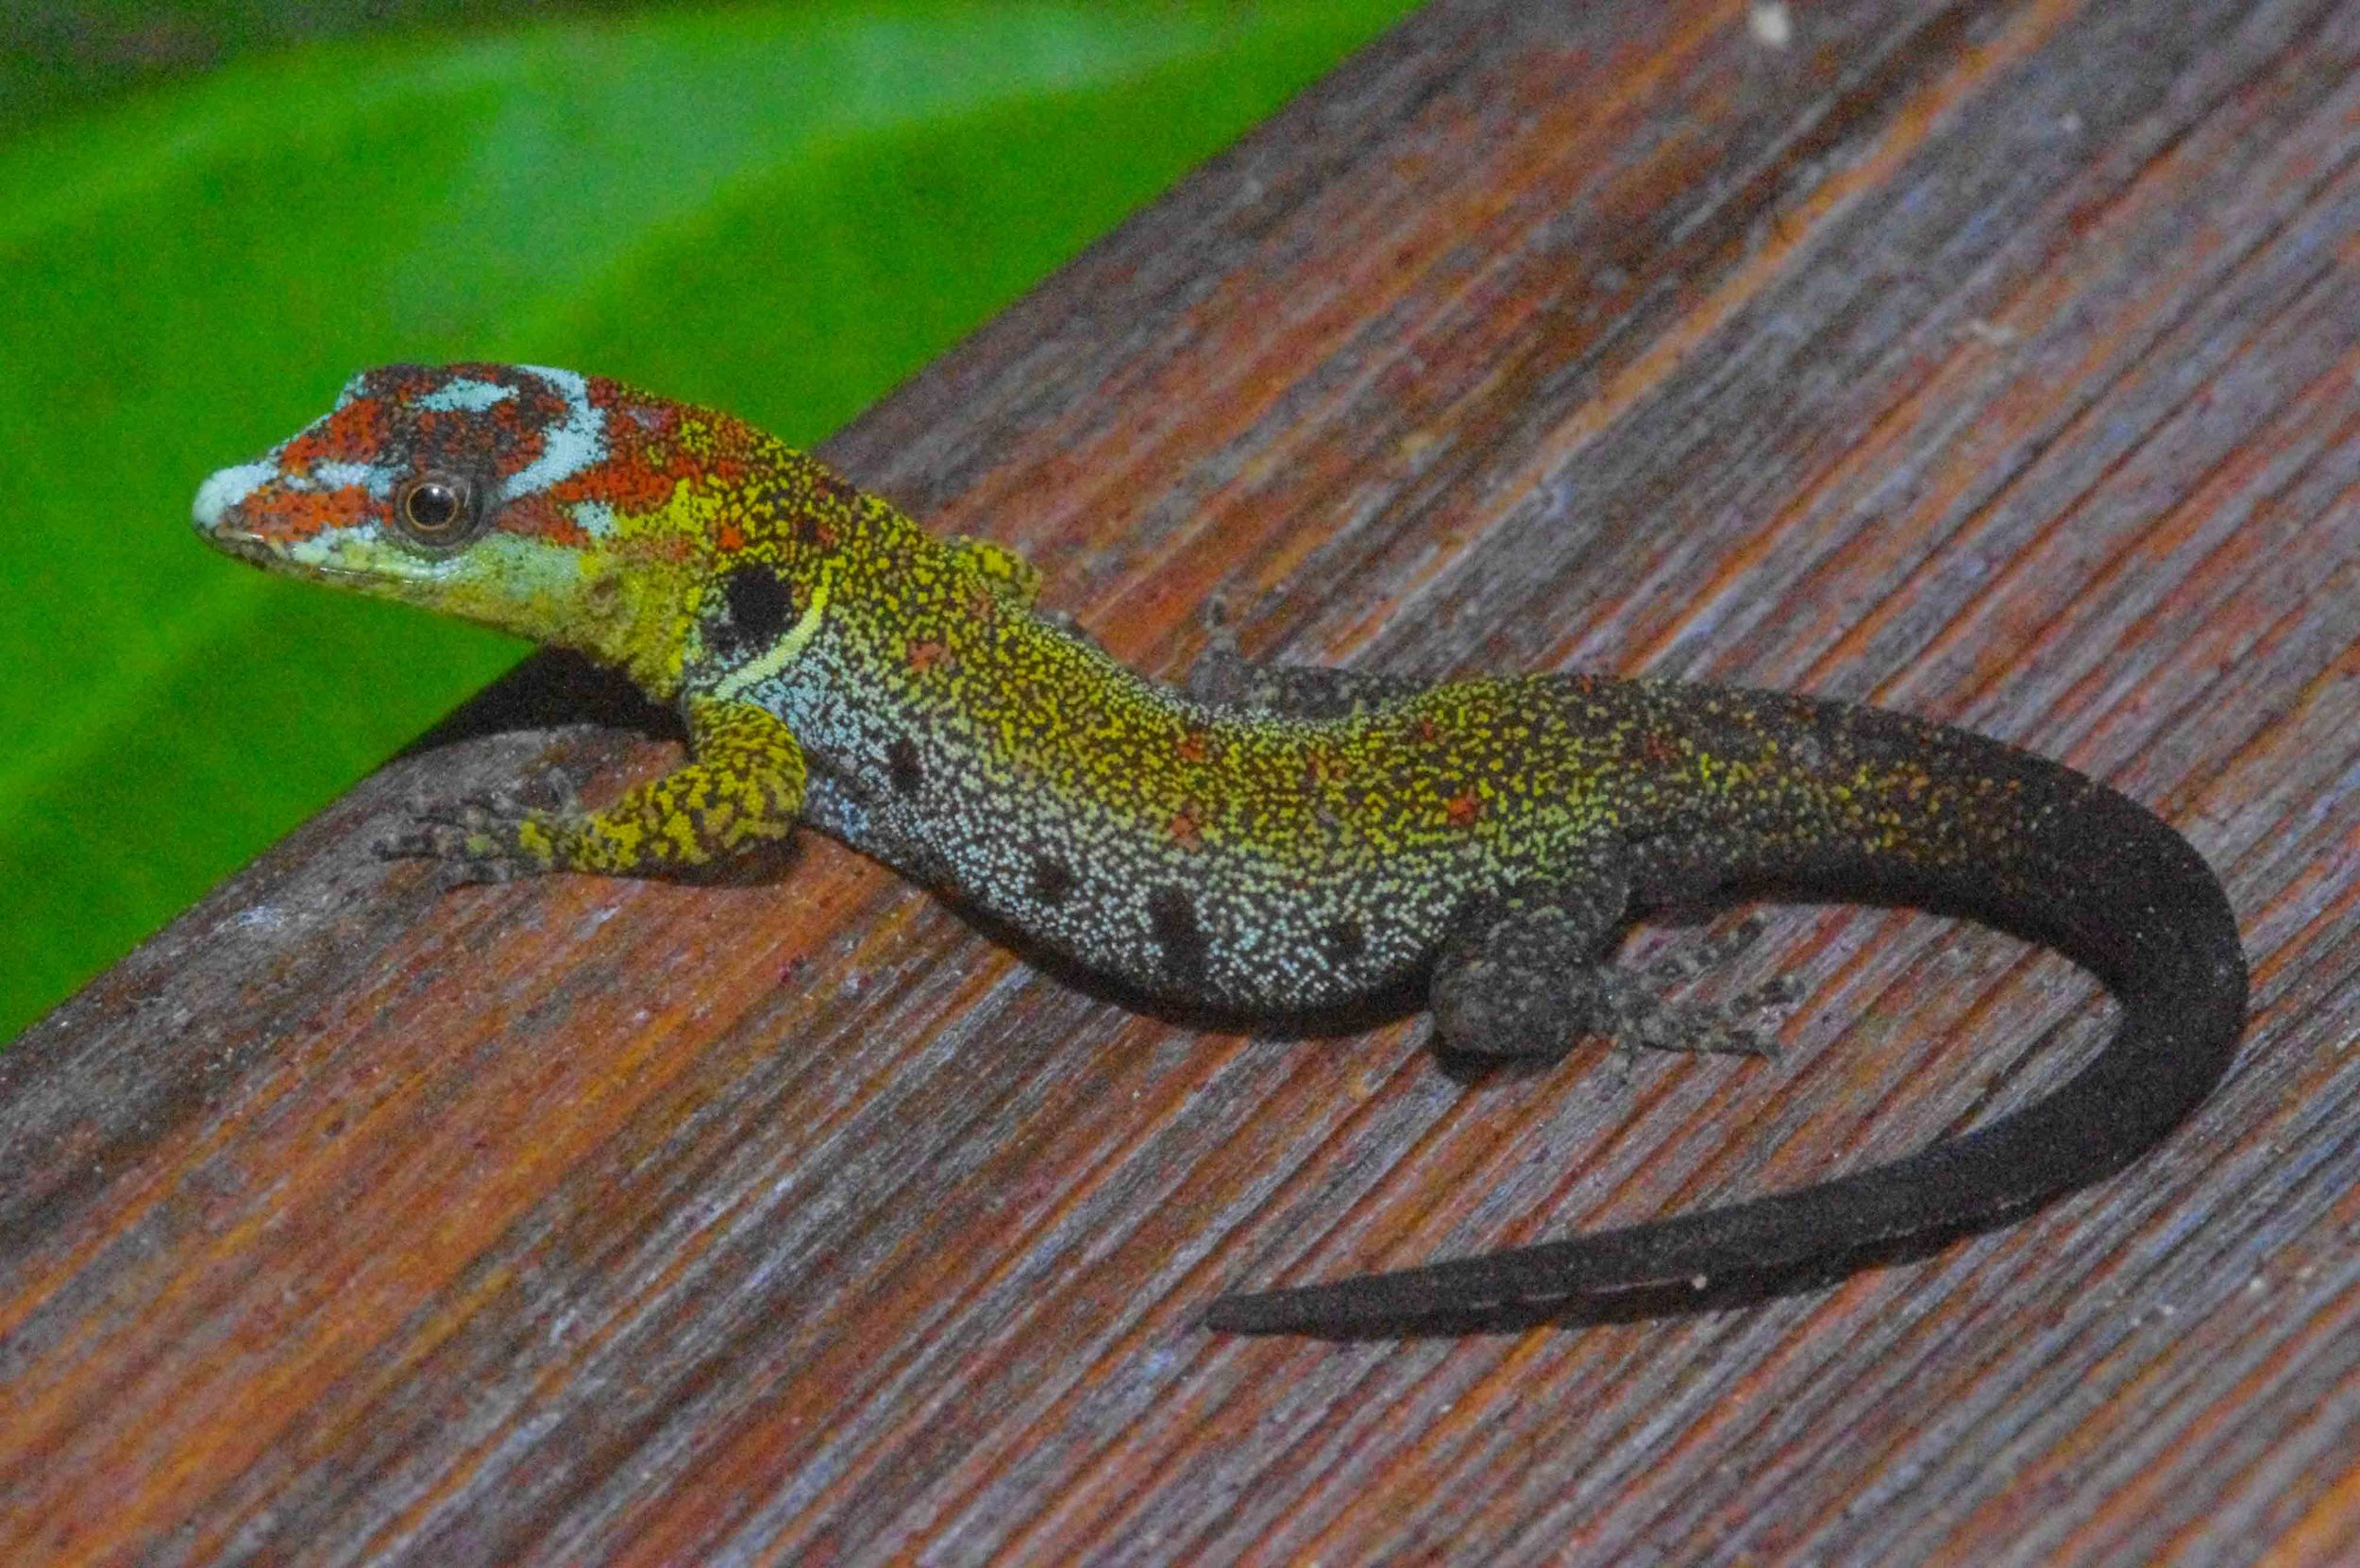 Gonatodes humeralis, Bridled Forest Gecko (Photo by Matt Cage)